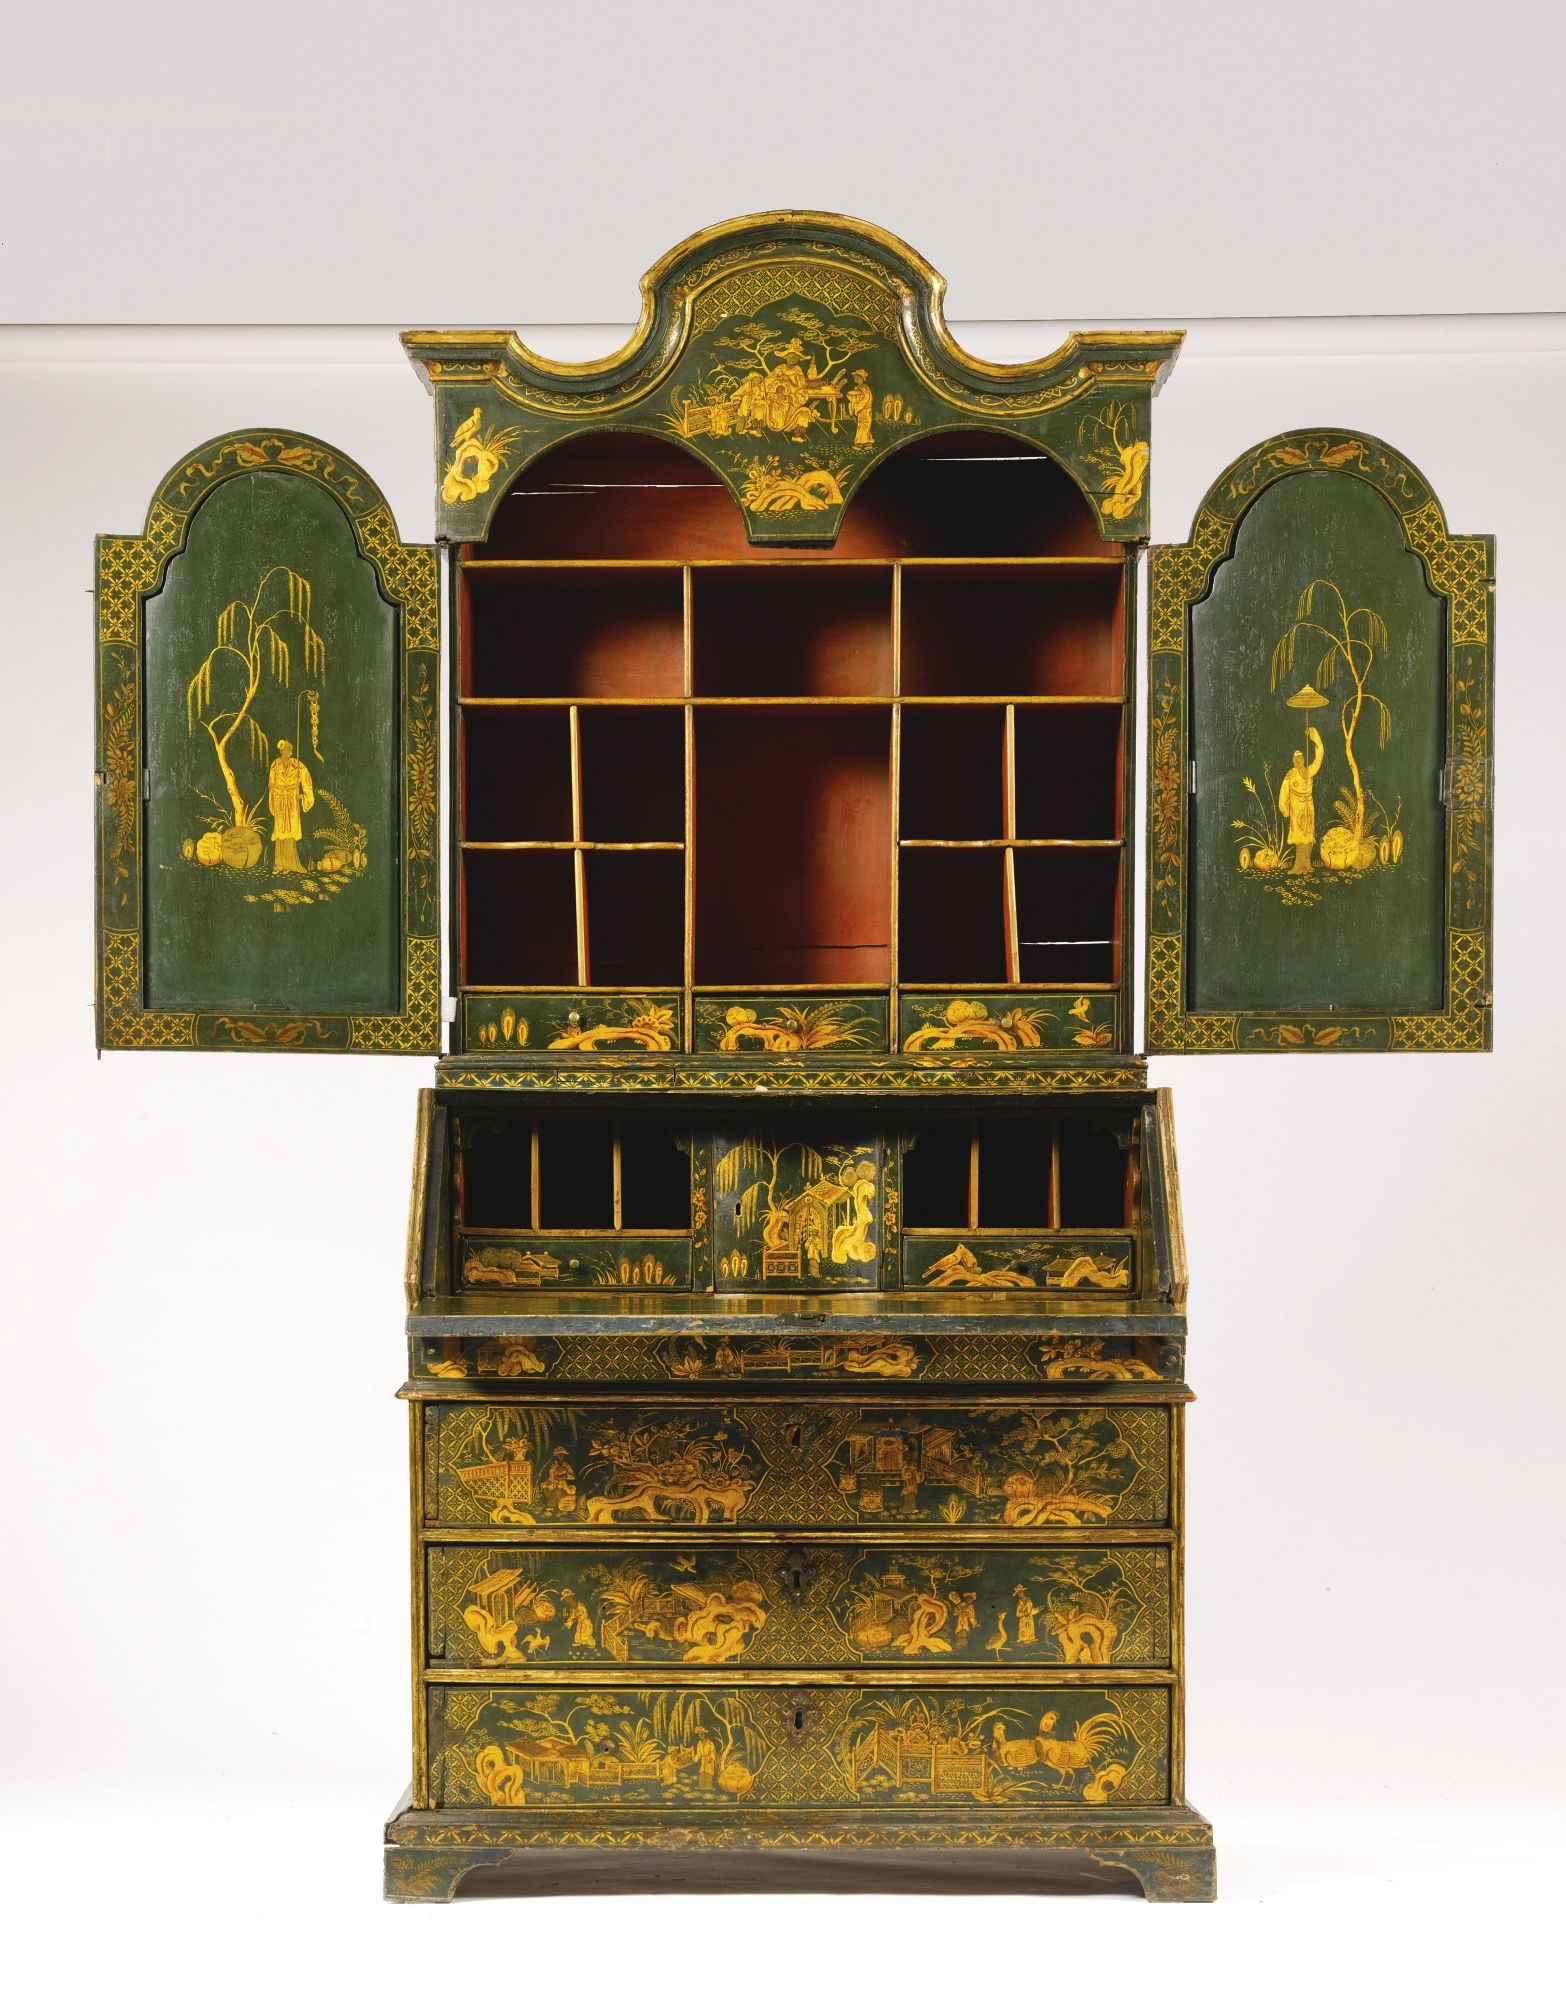 An Italian green and gilt-japanned chinoiserie bureau cabinet, Venetian,  circa 1750 - An Italian Green And Gilt-japanned Chinoiserie Bureau Cabinet